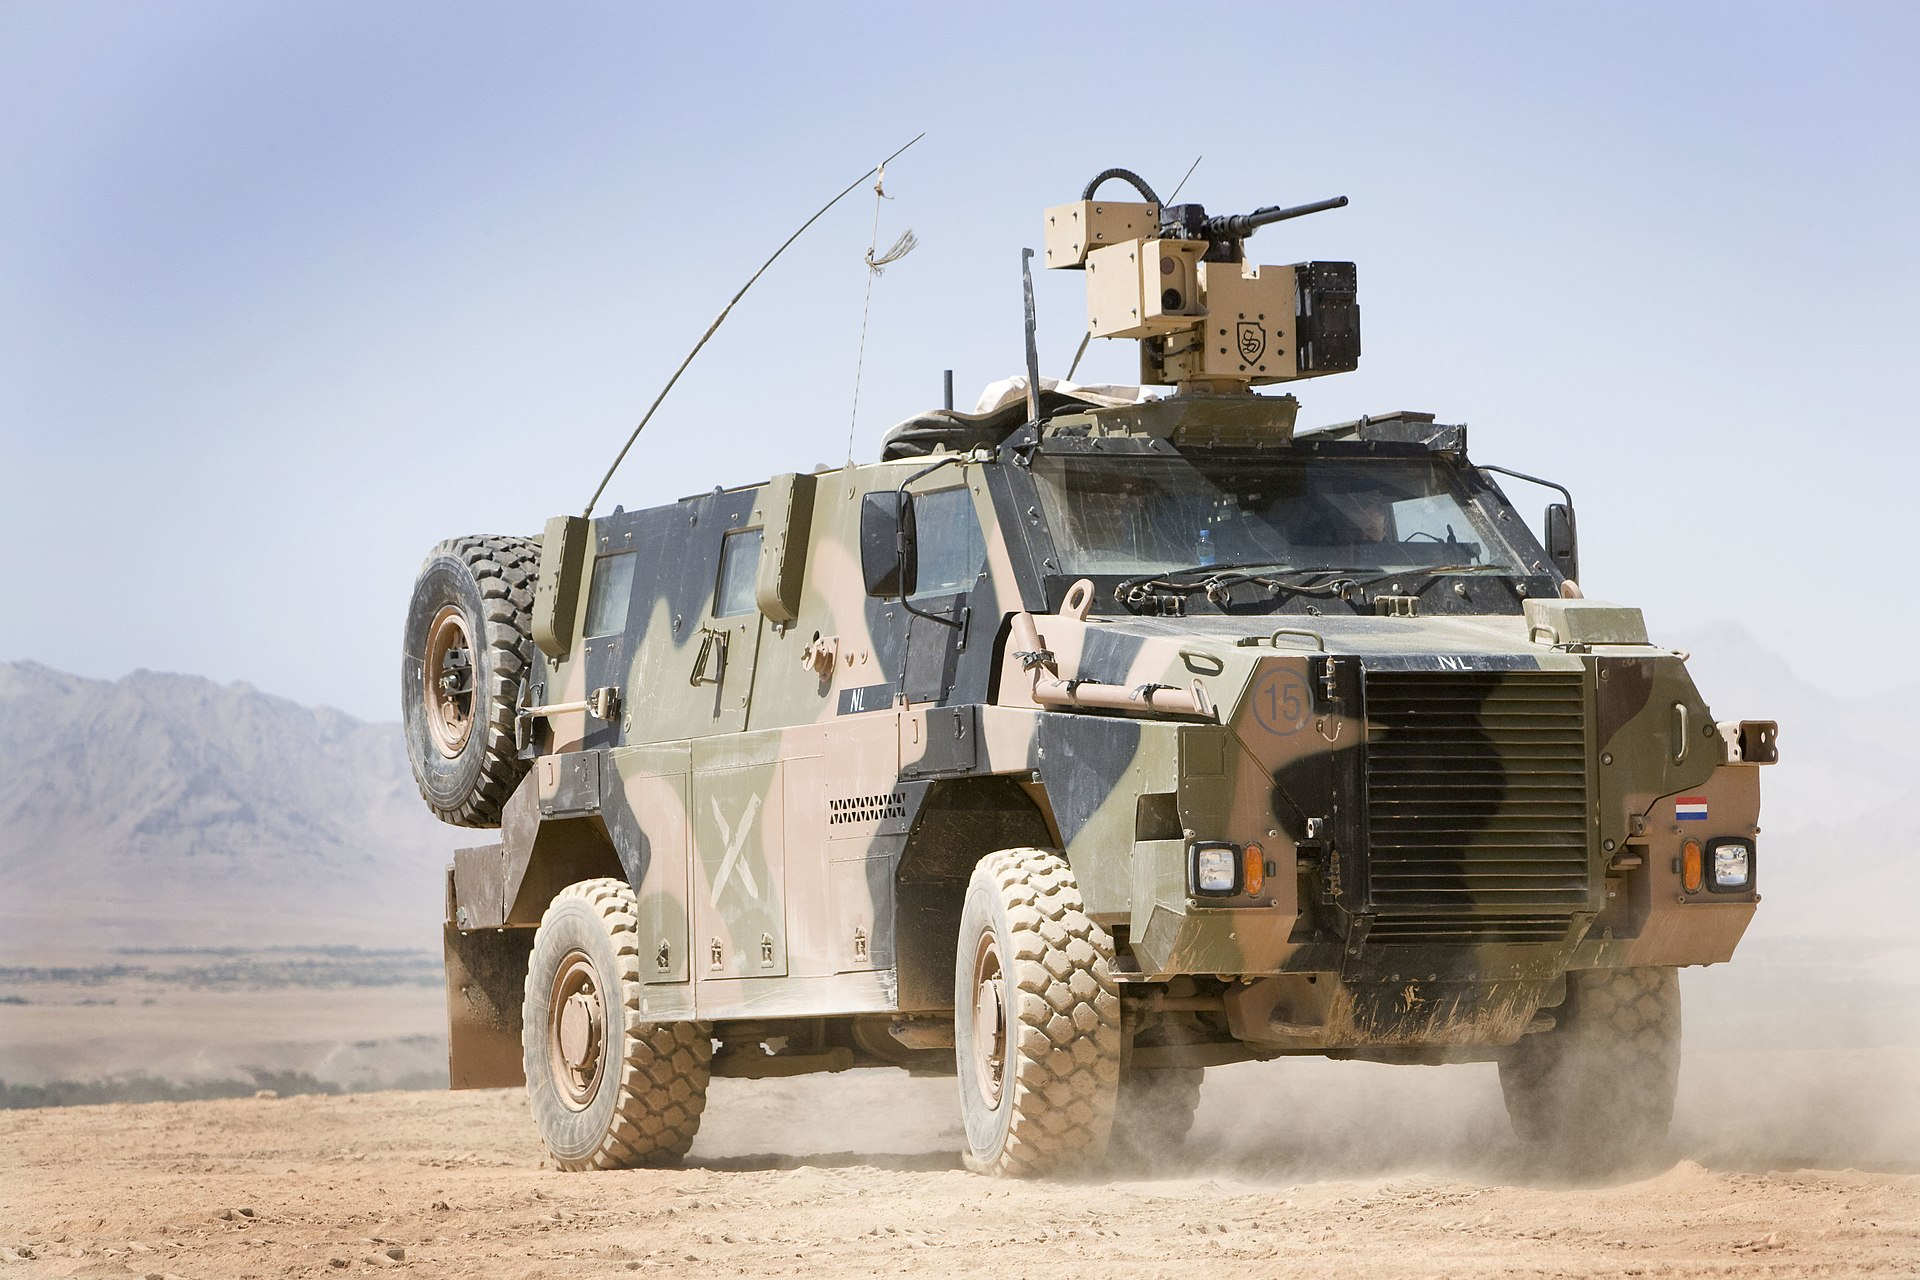 Bushmaster Protected Mobility Vehicle - Wikipedia